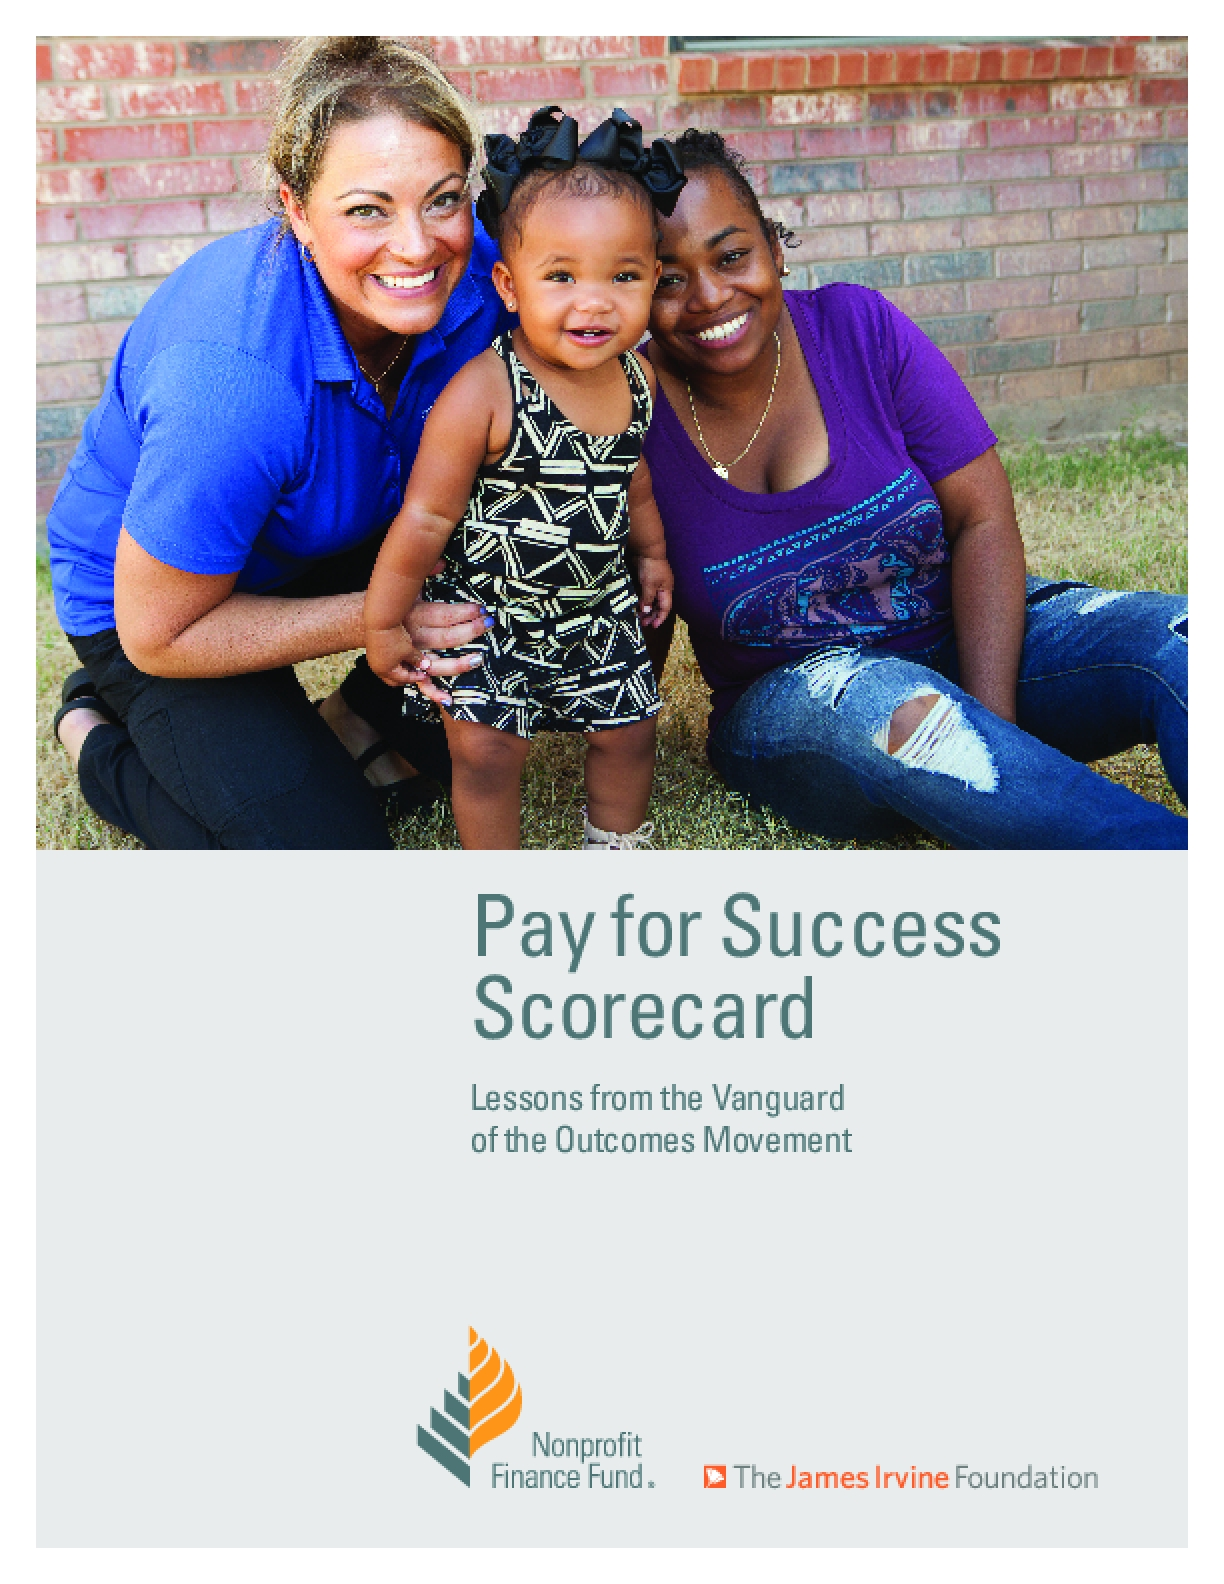 Pay for Success Scorecard: Lessons from the Vanguard of the Outcomes Movement